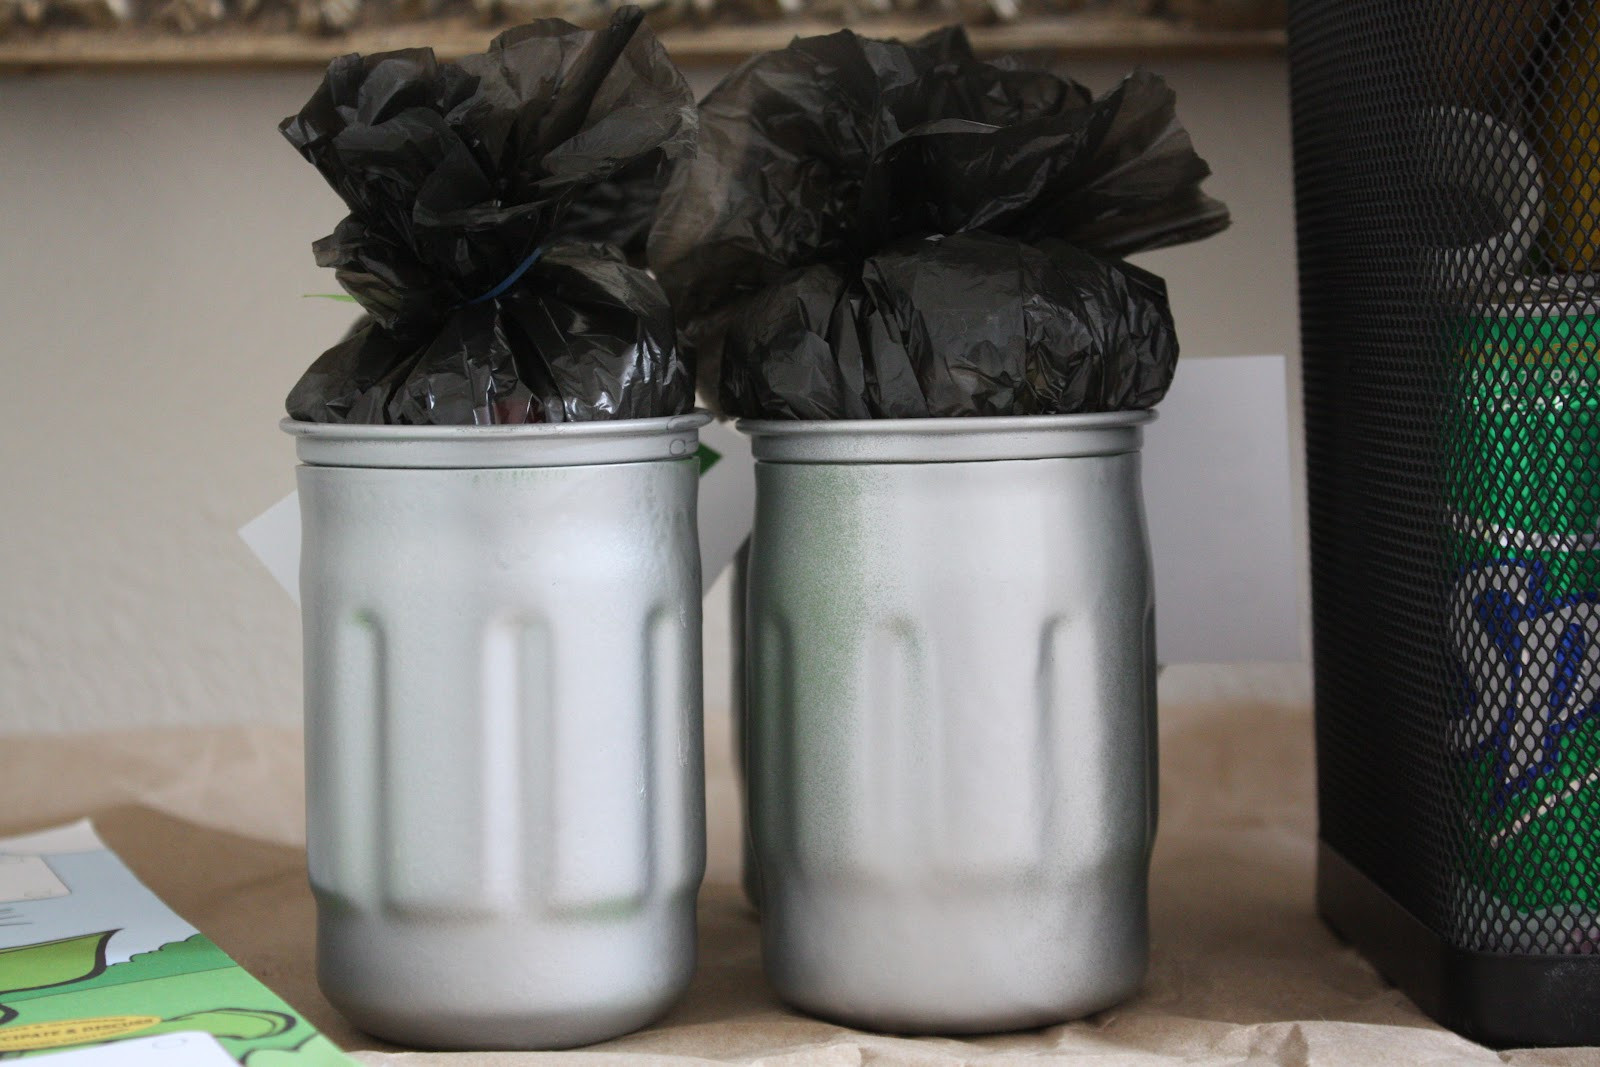 Best ideas about DIY Trash Can . Save or Pin BellaGrey Designs DIY Trash can Tutorial Now.